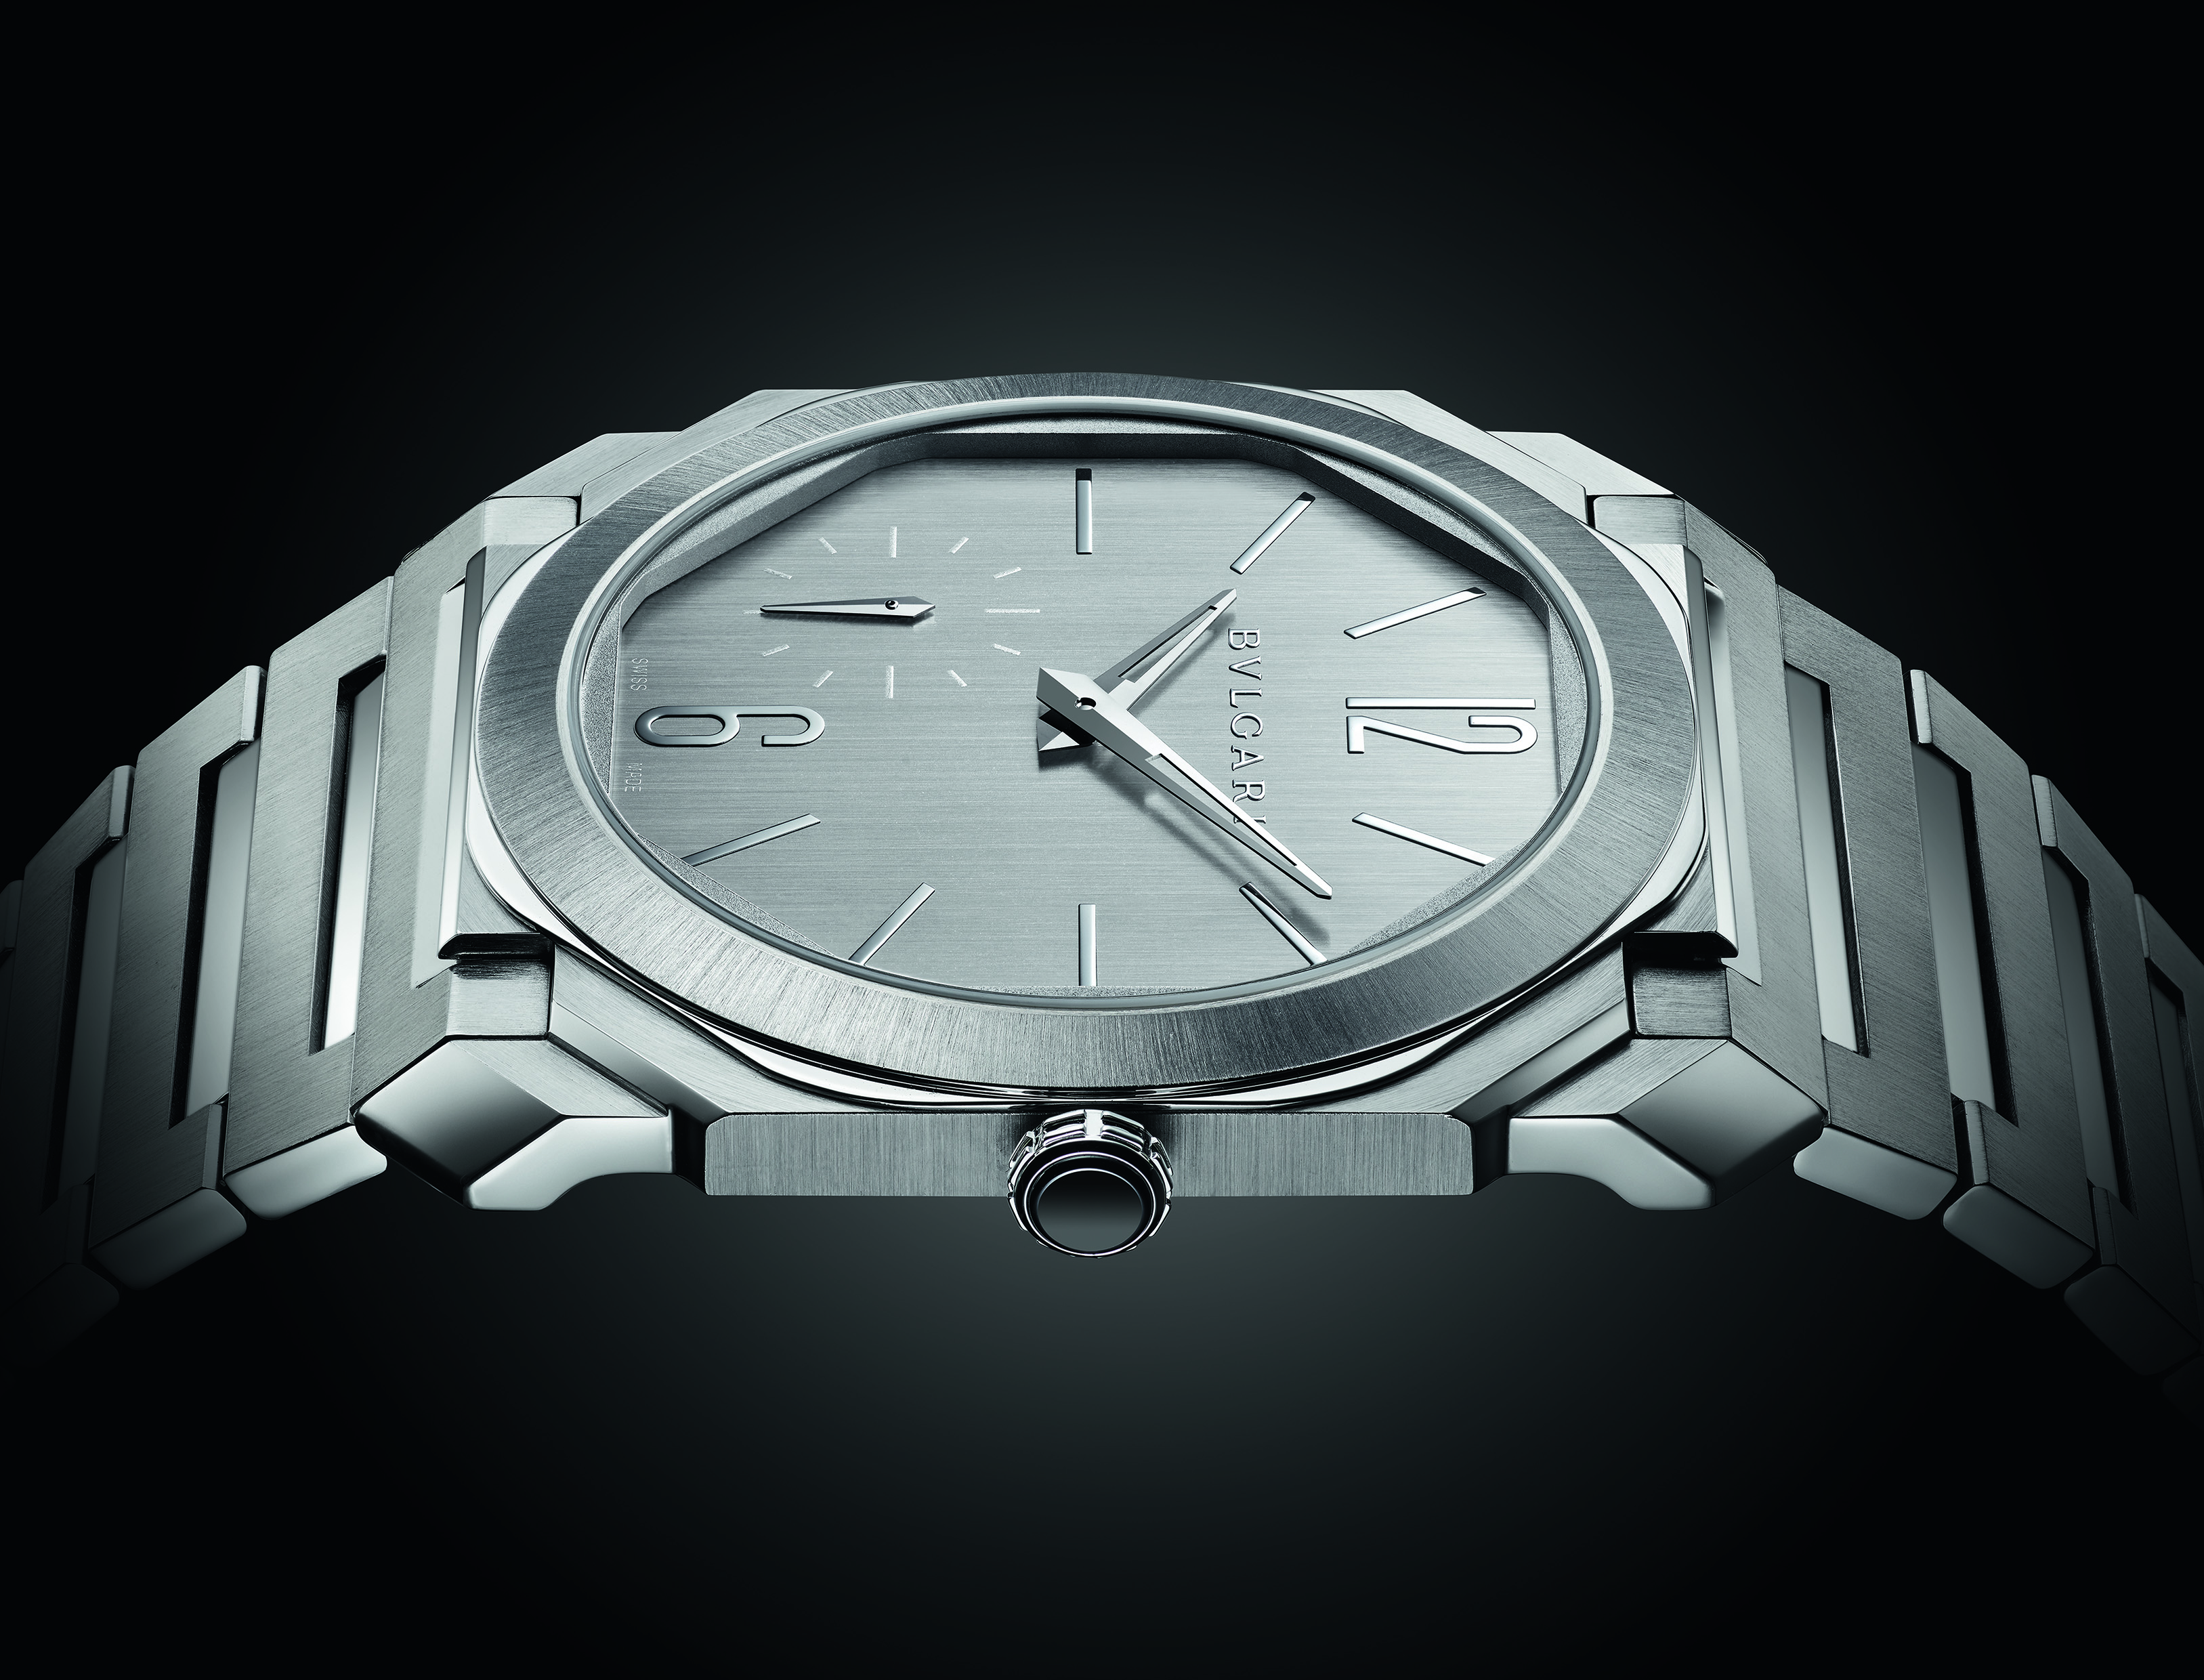 The Bulgari Octo Finissimo is the most contemporary watch design